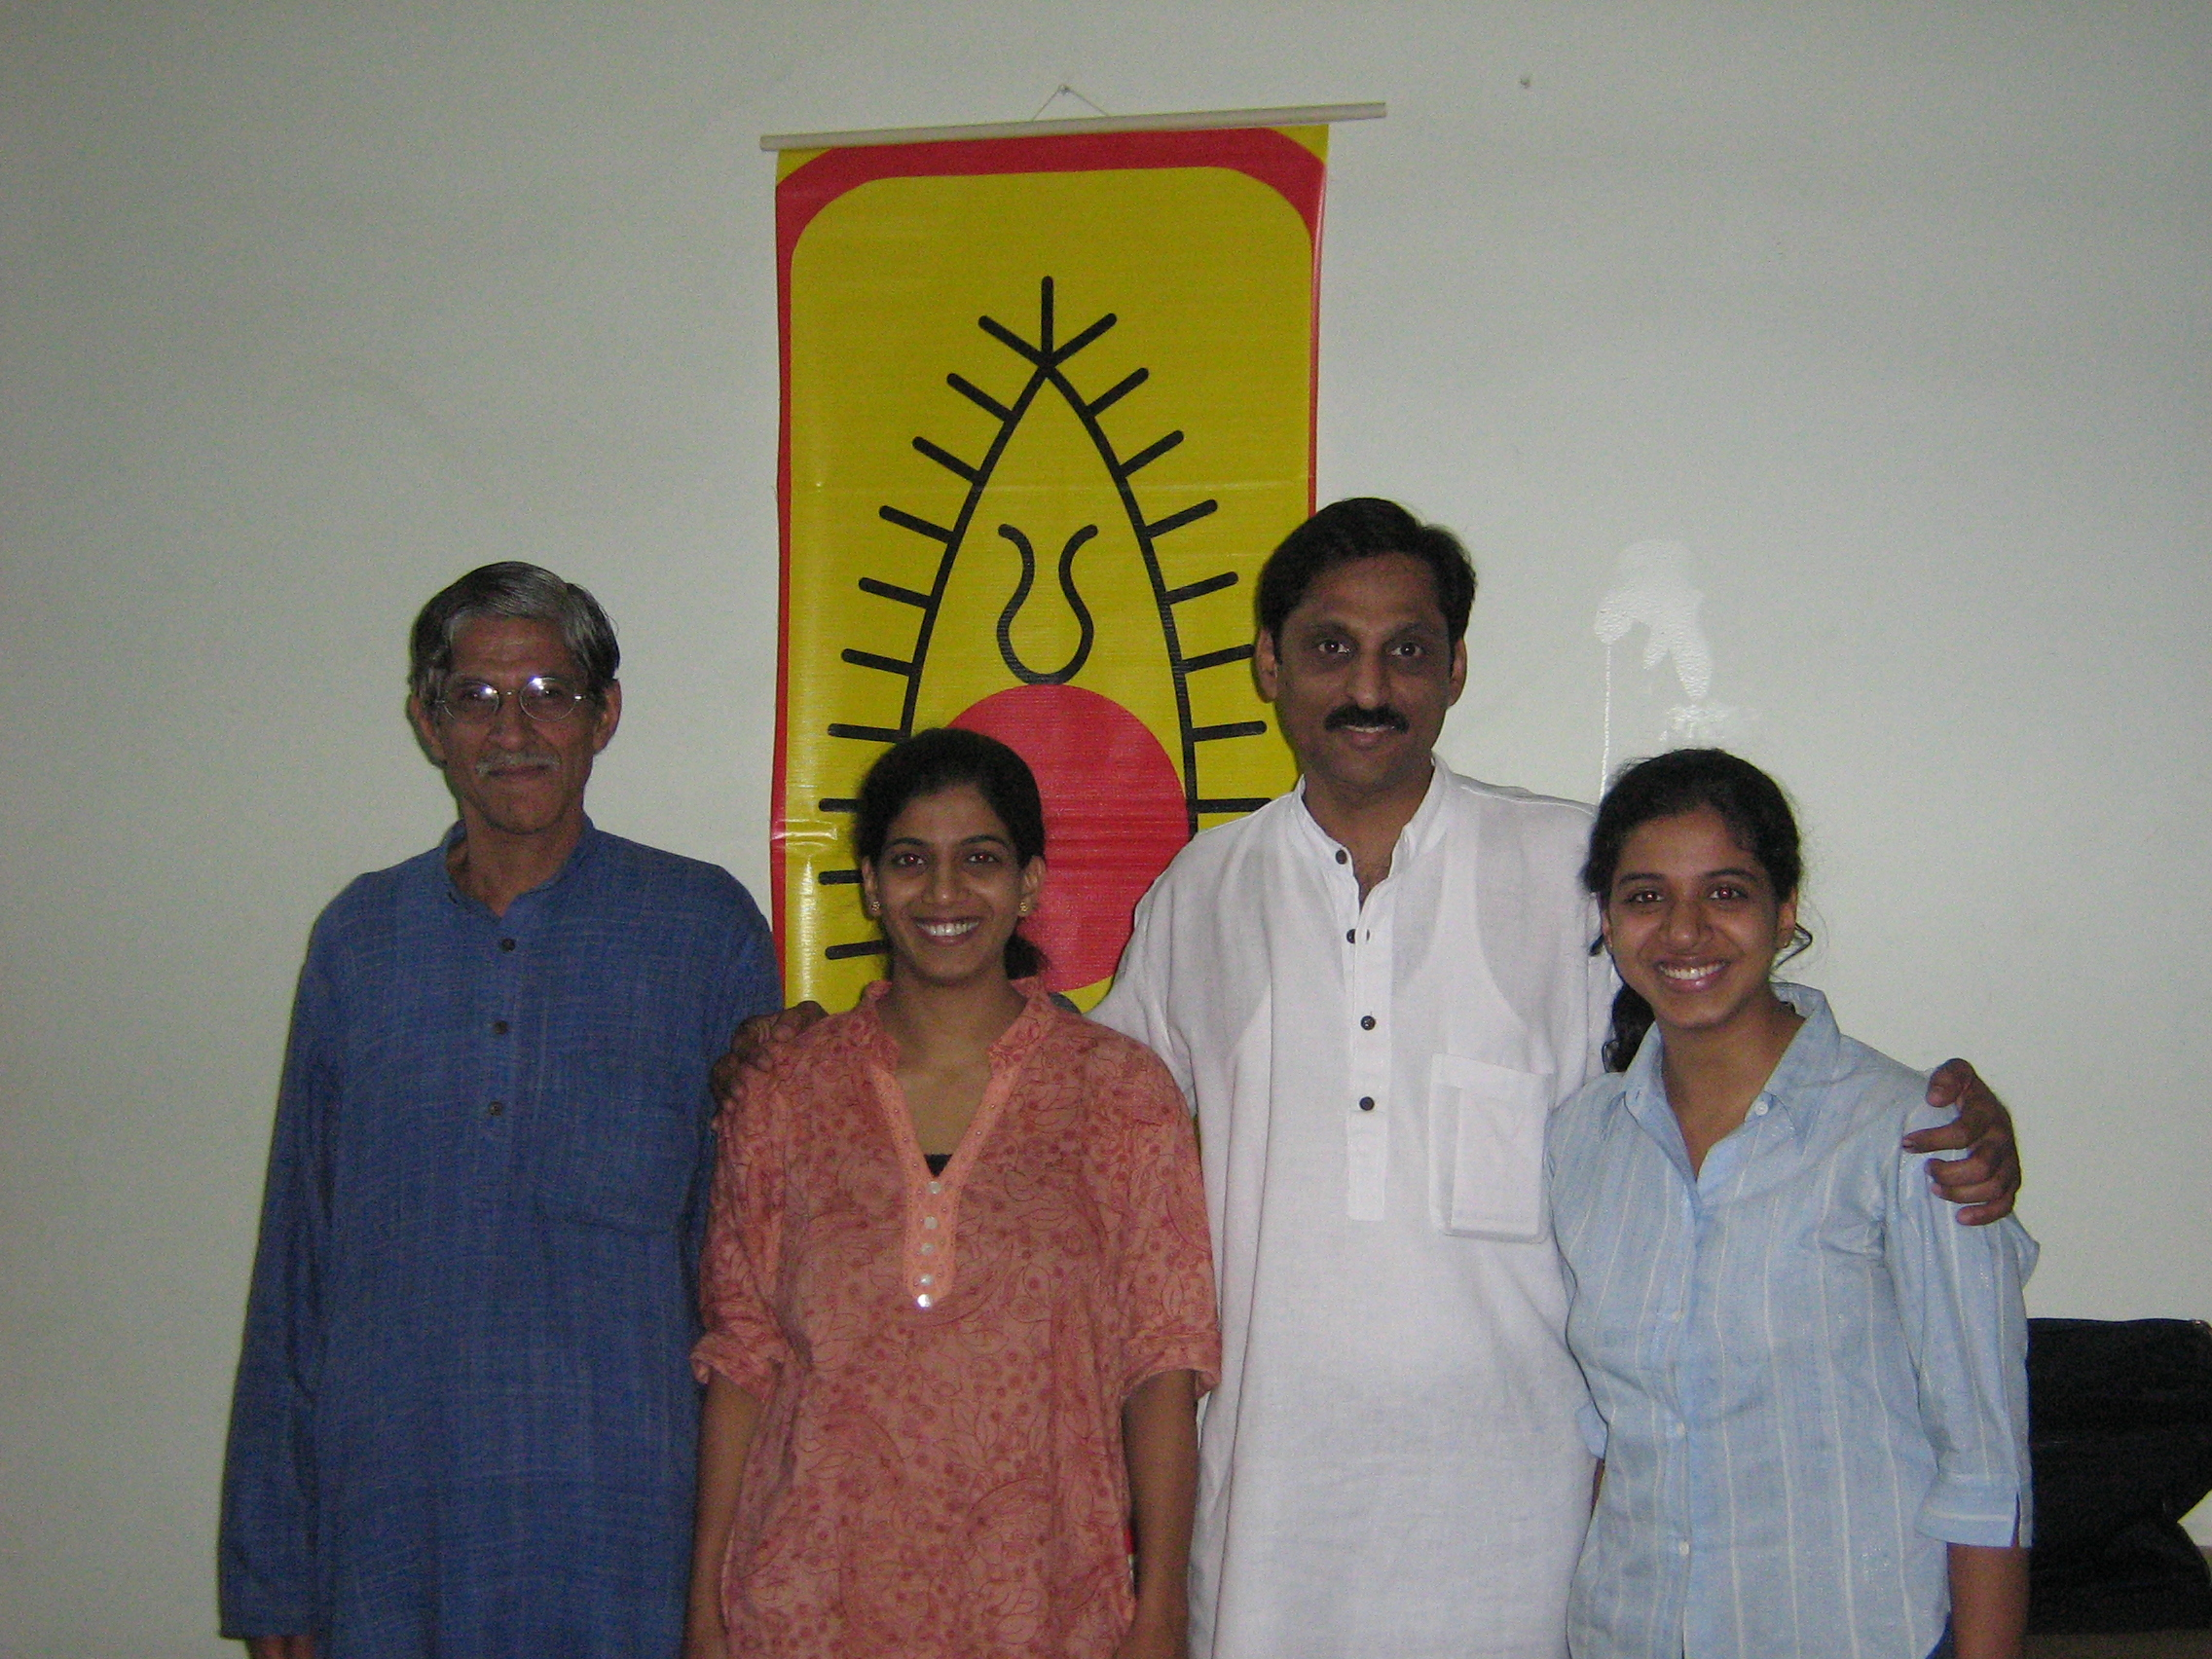 From left to right: Dr Kiran Seth, Kasturi, Shirish, Gargi